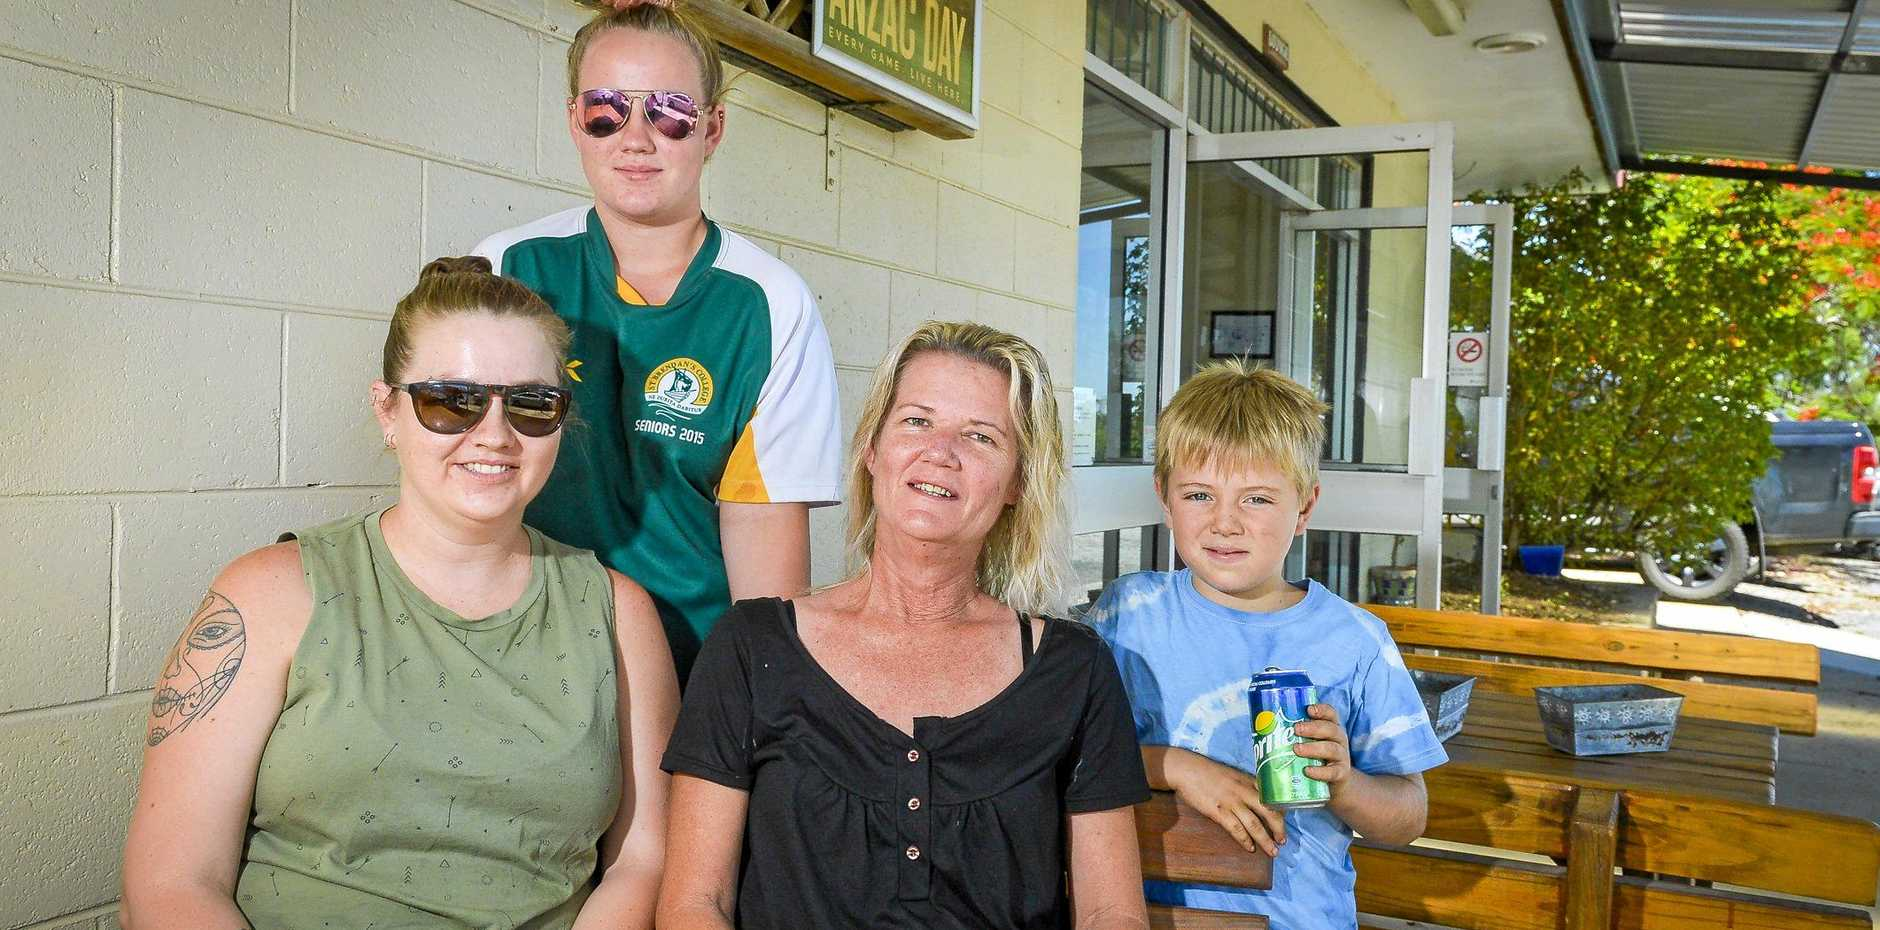 Ambrose resident Sarah Hargreaves and her son Ben (LEFT and RIGHT), evacuated to Raglan Tavern owned by Michelle Weir, pictured with her daughter Makenzey Weir.